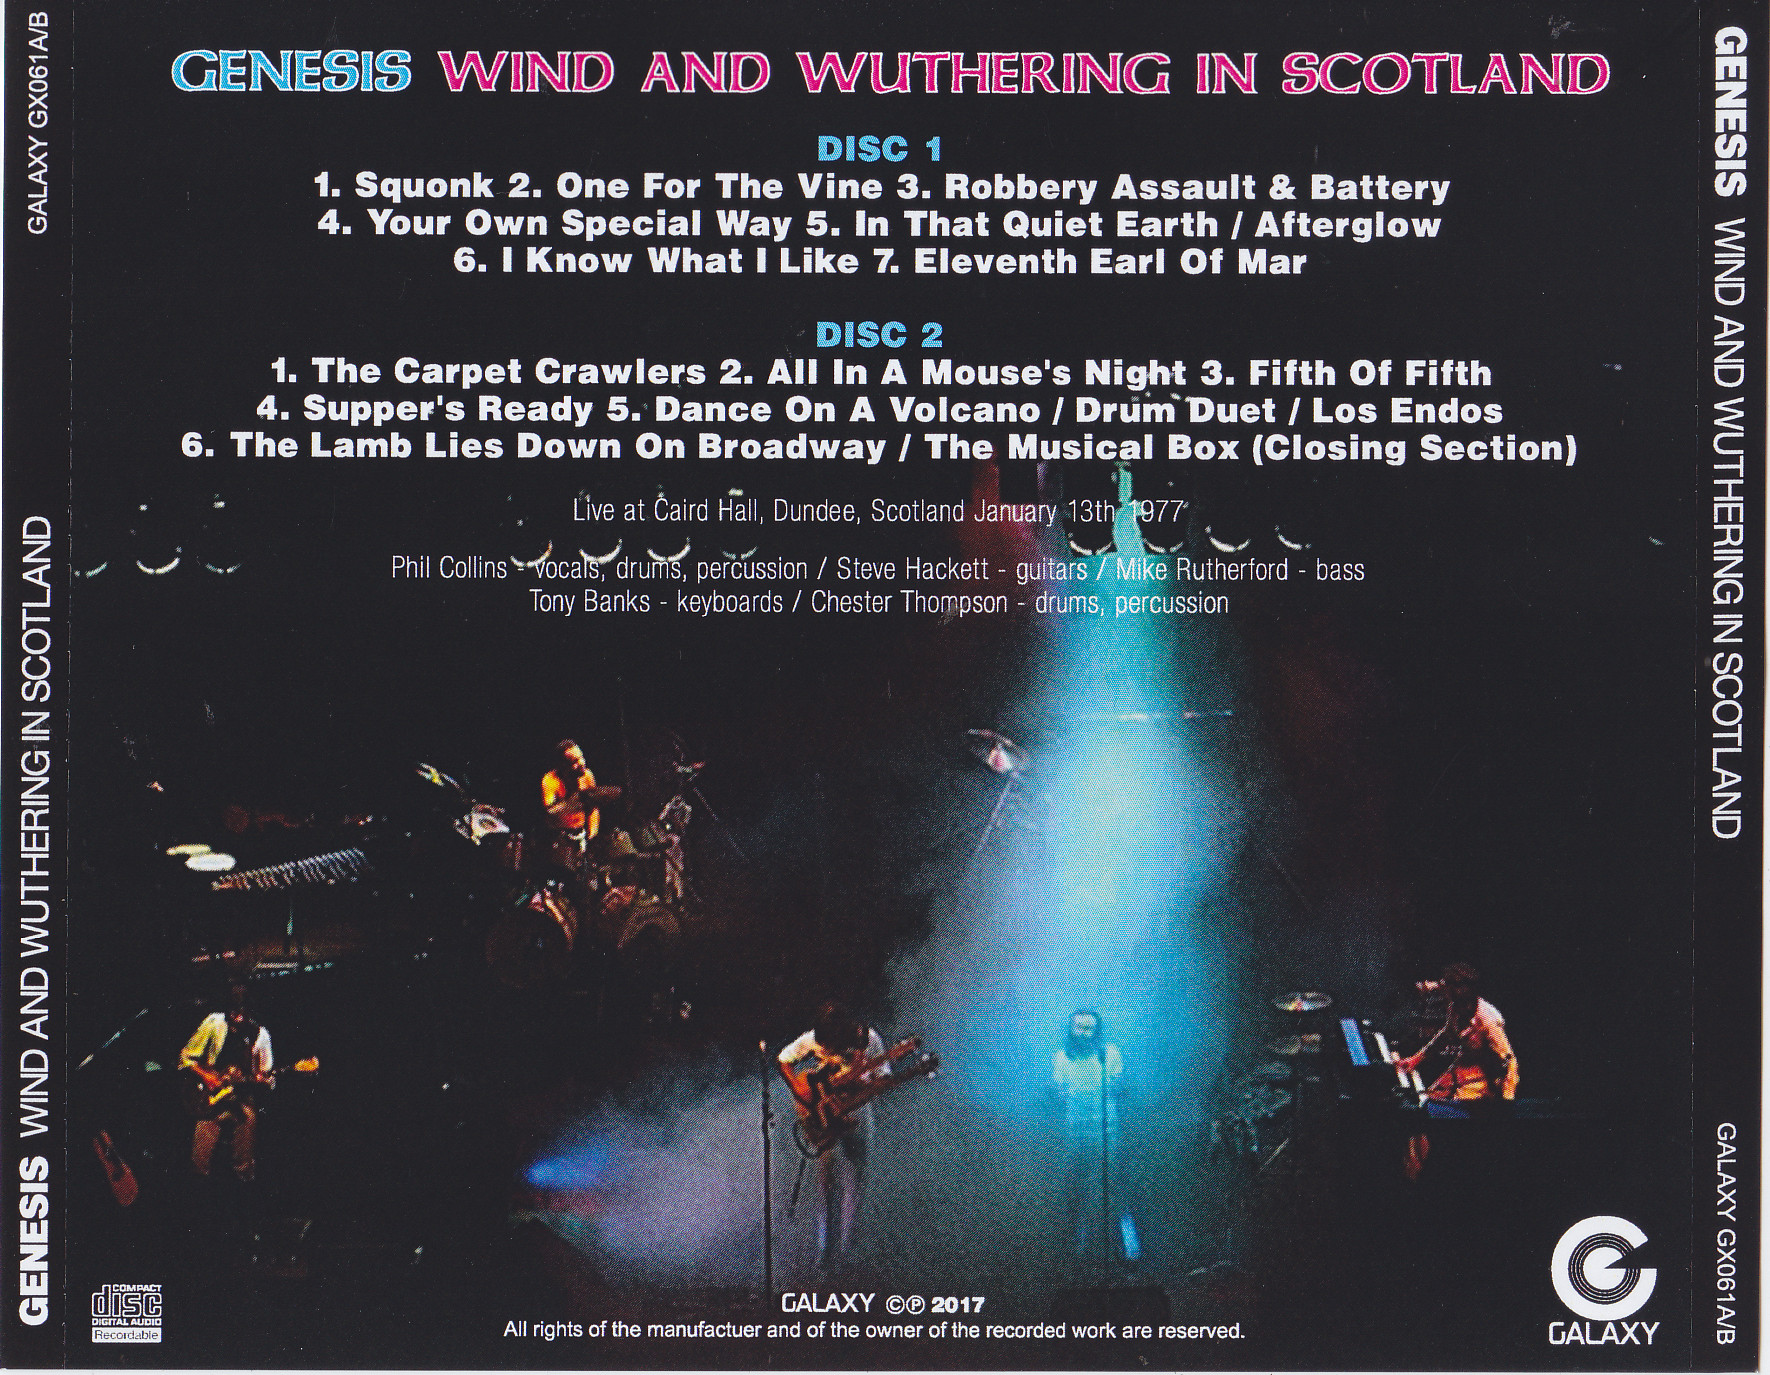 Genesis / Wind And Wuthering In Scotland / 2CDR – GiGinJapan